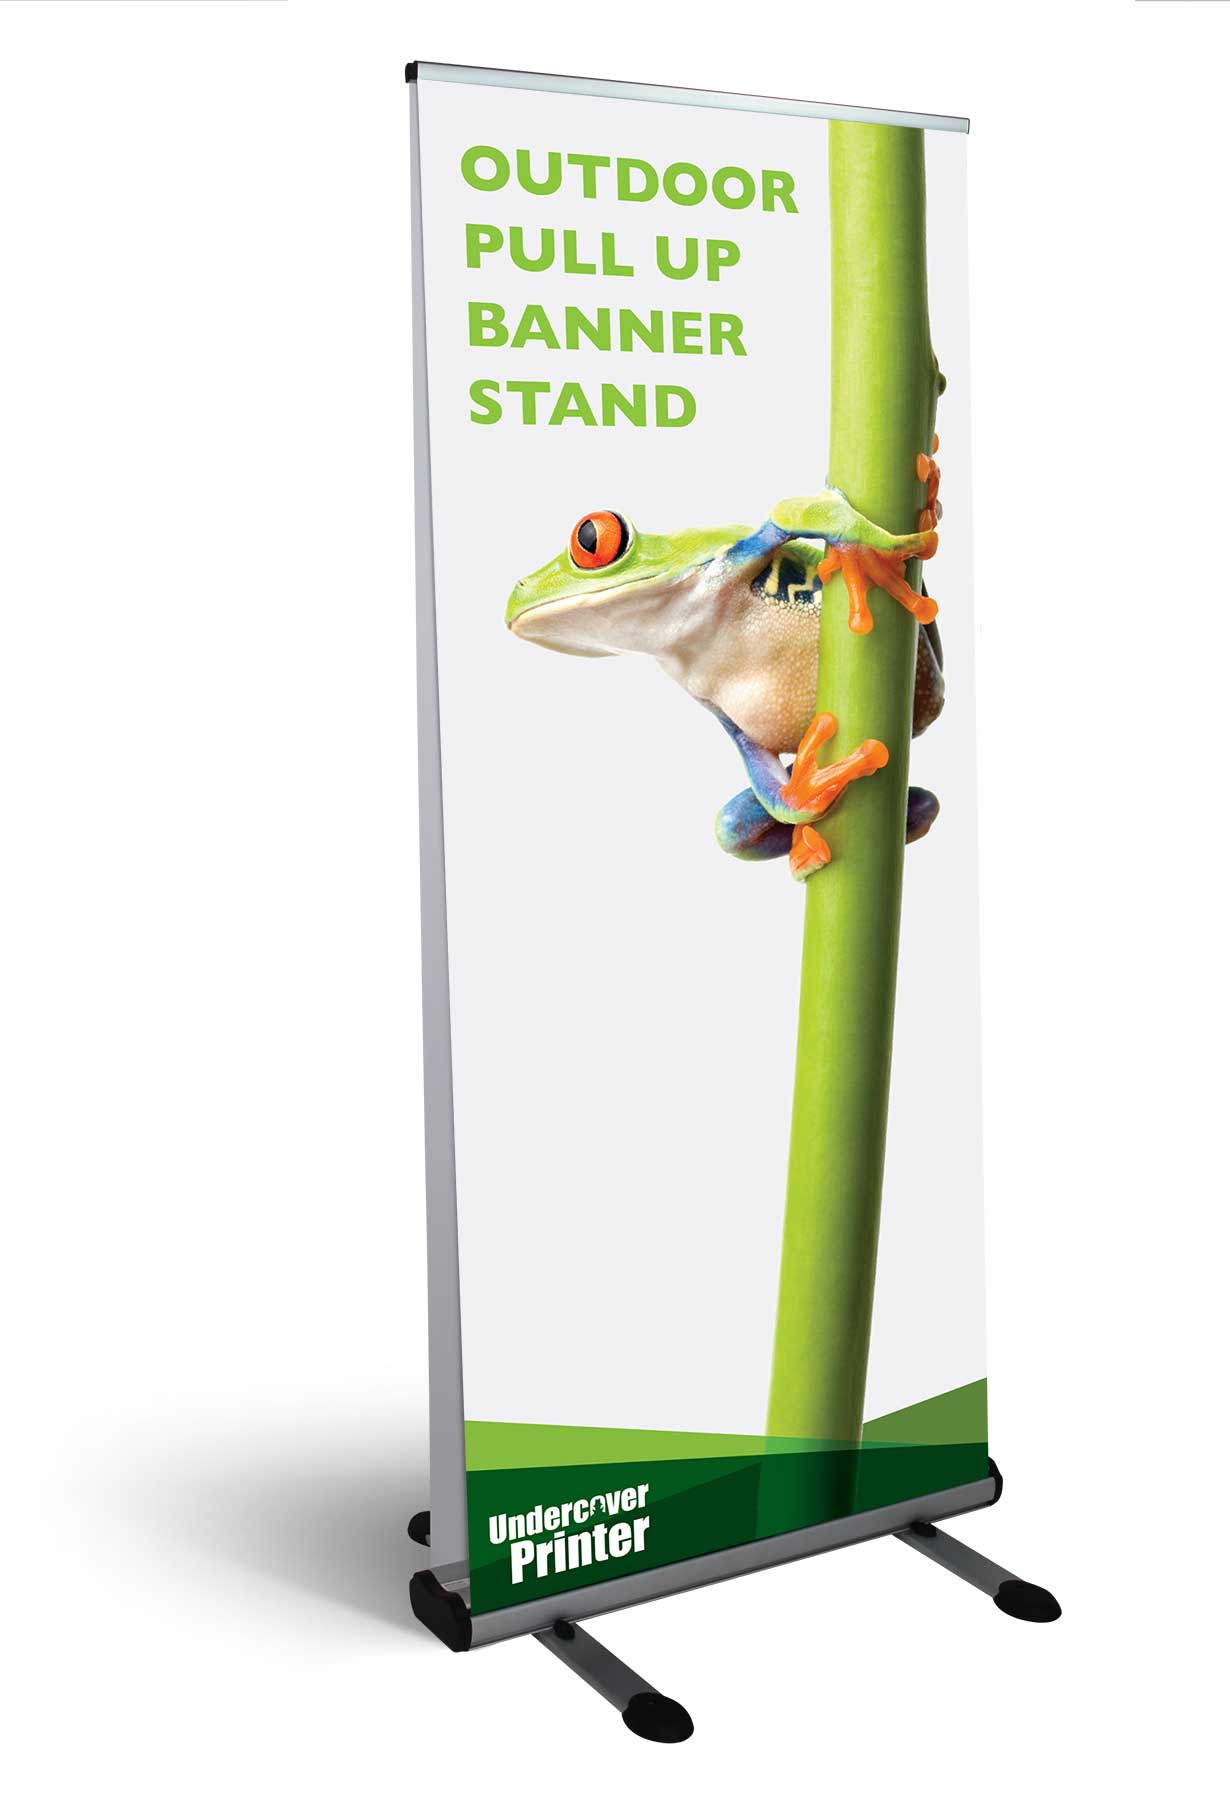 outdoor-pull-up-banner-stand-va-md-dc